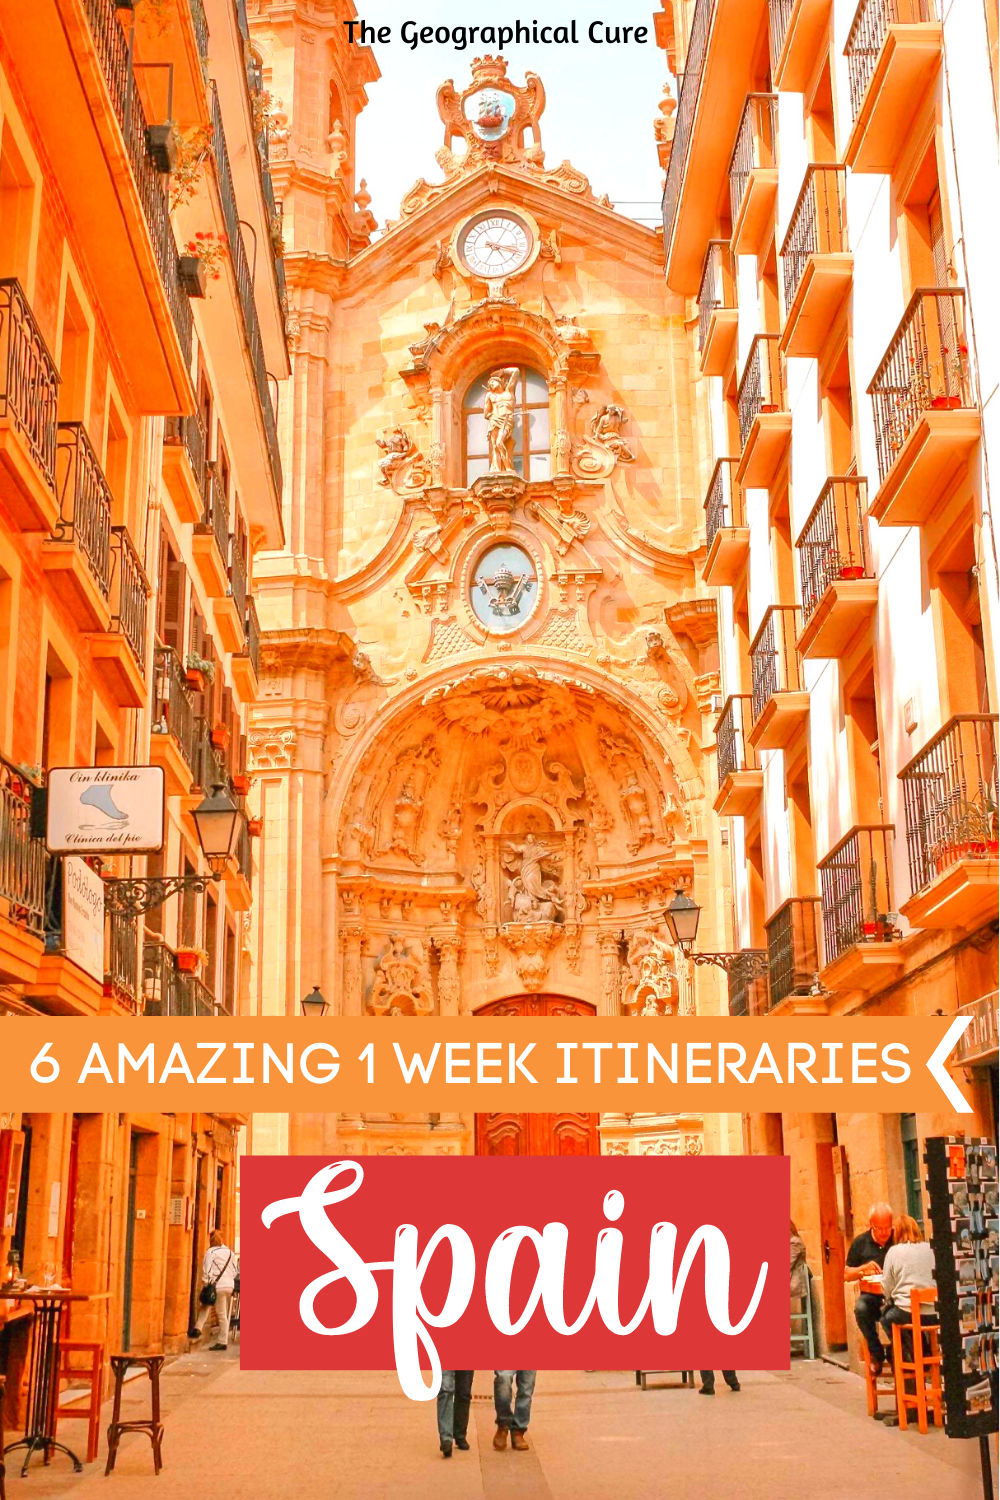 6 Amazing One Week Itineraries for Spain